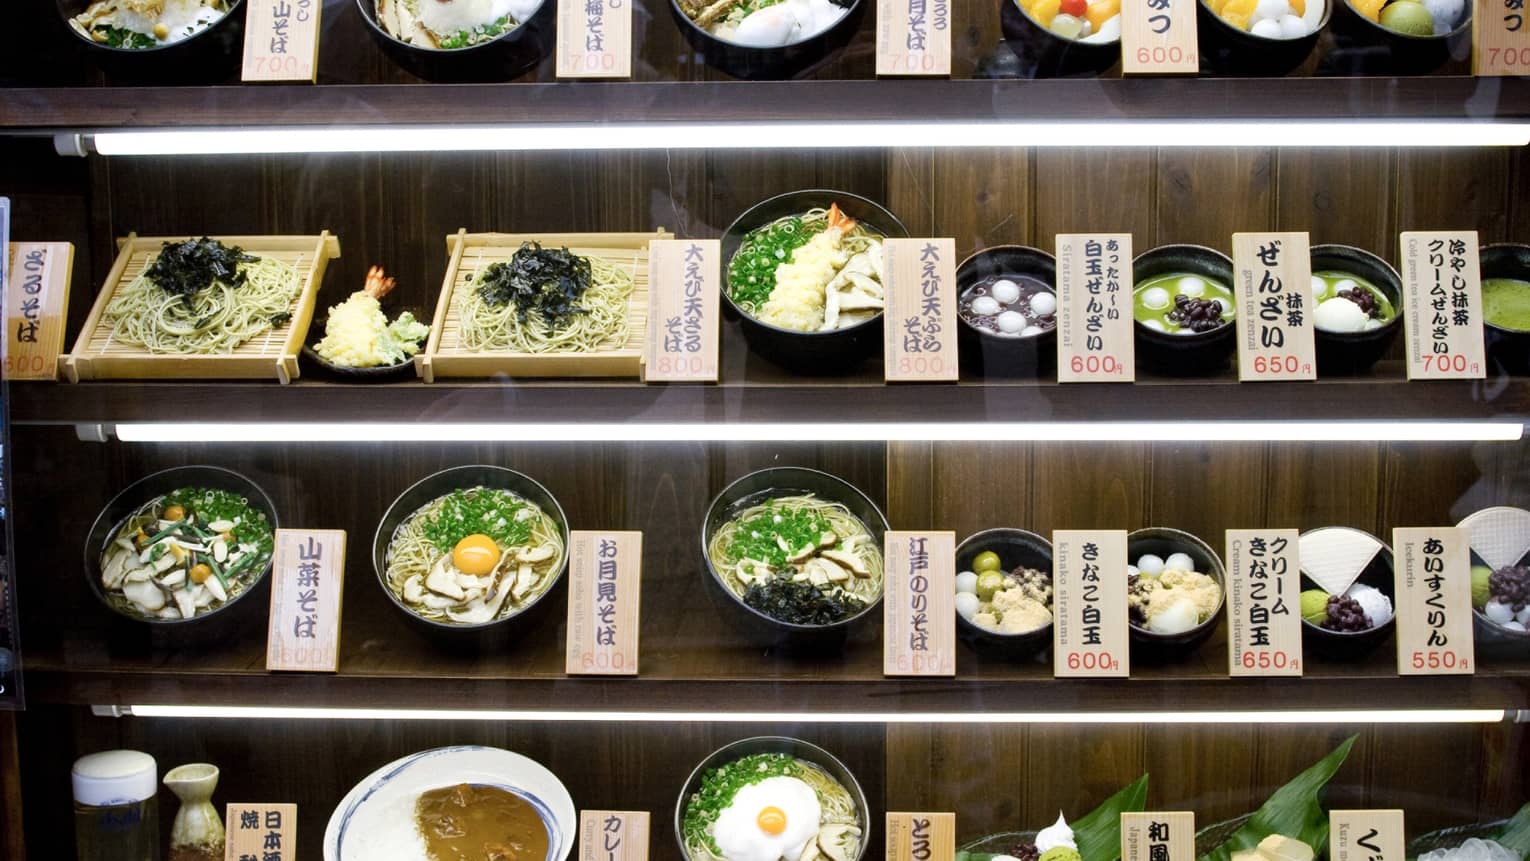 An elaborate food display in Tokyo